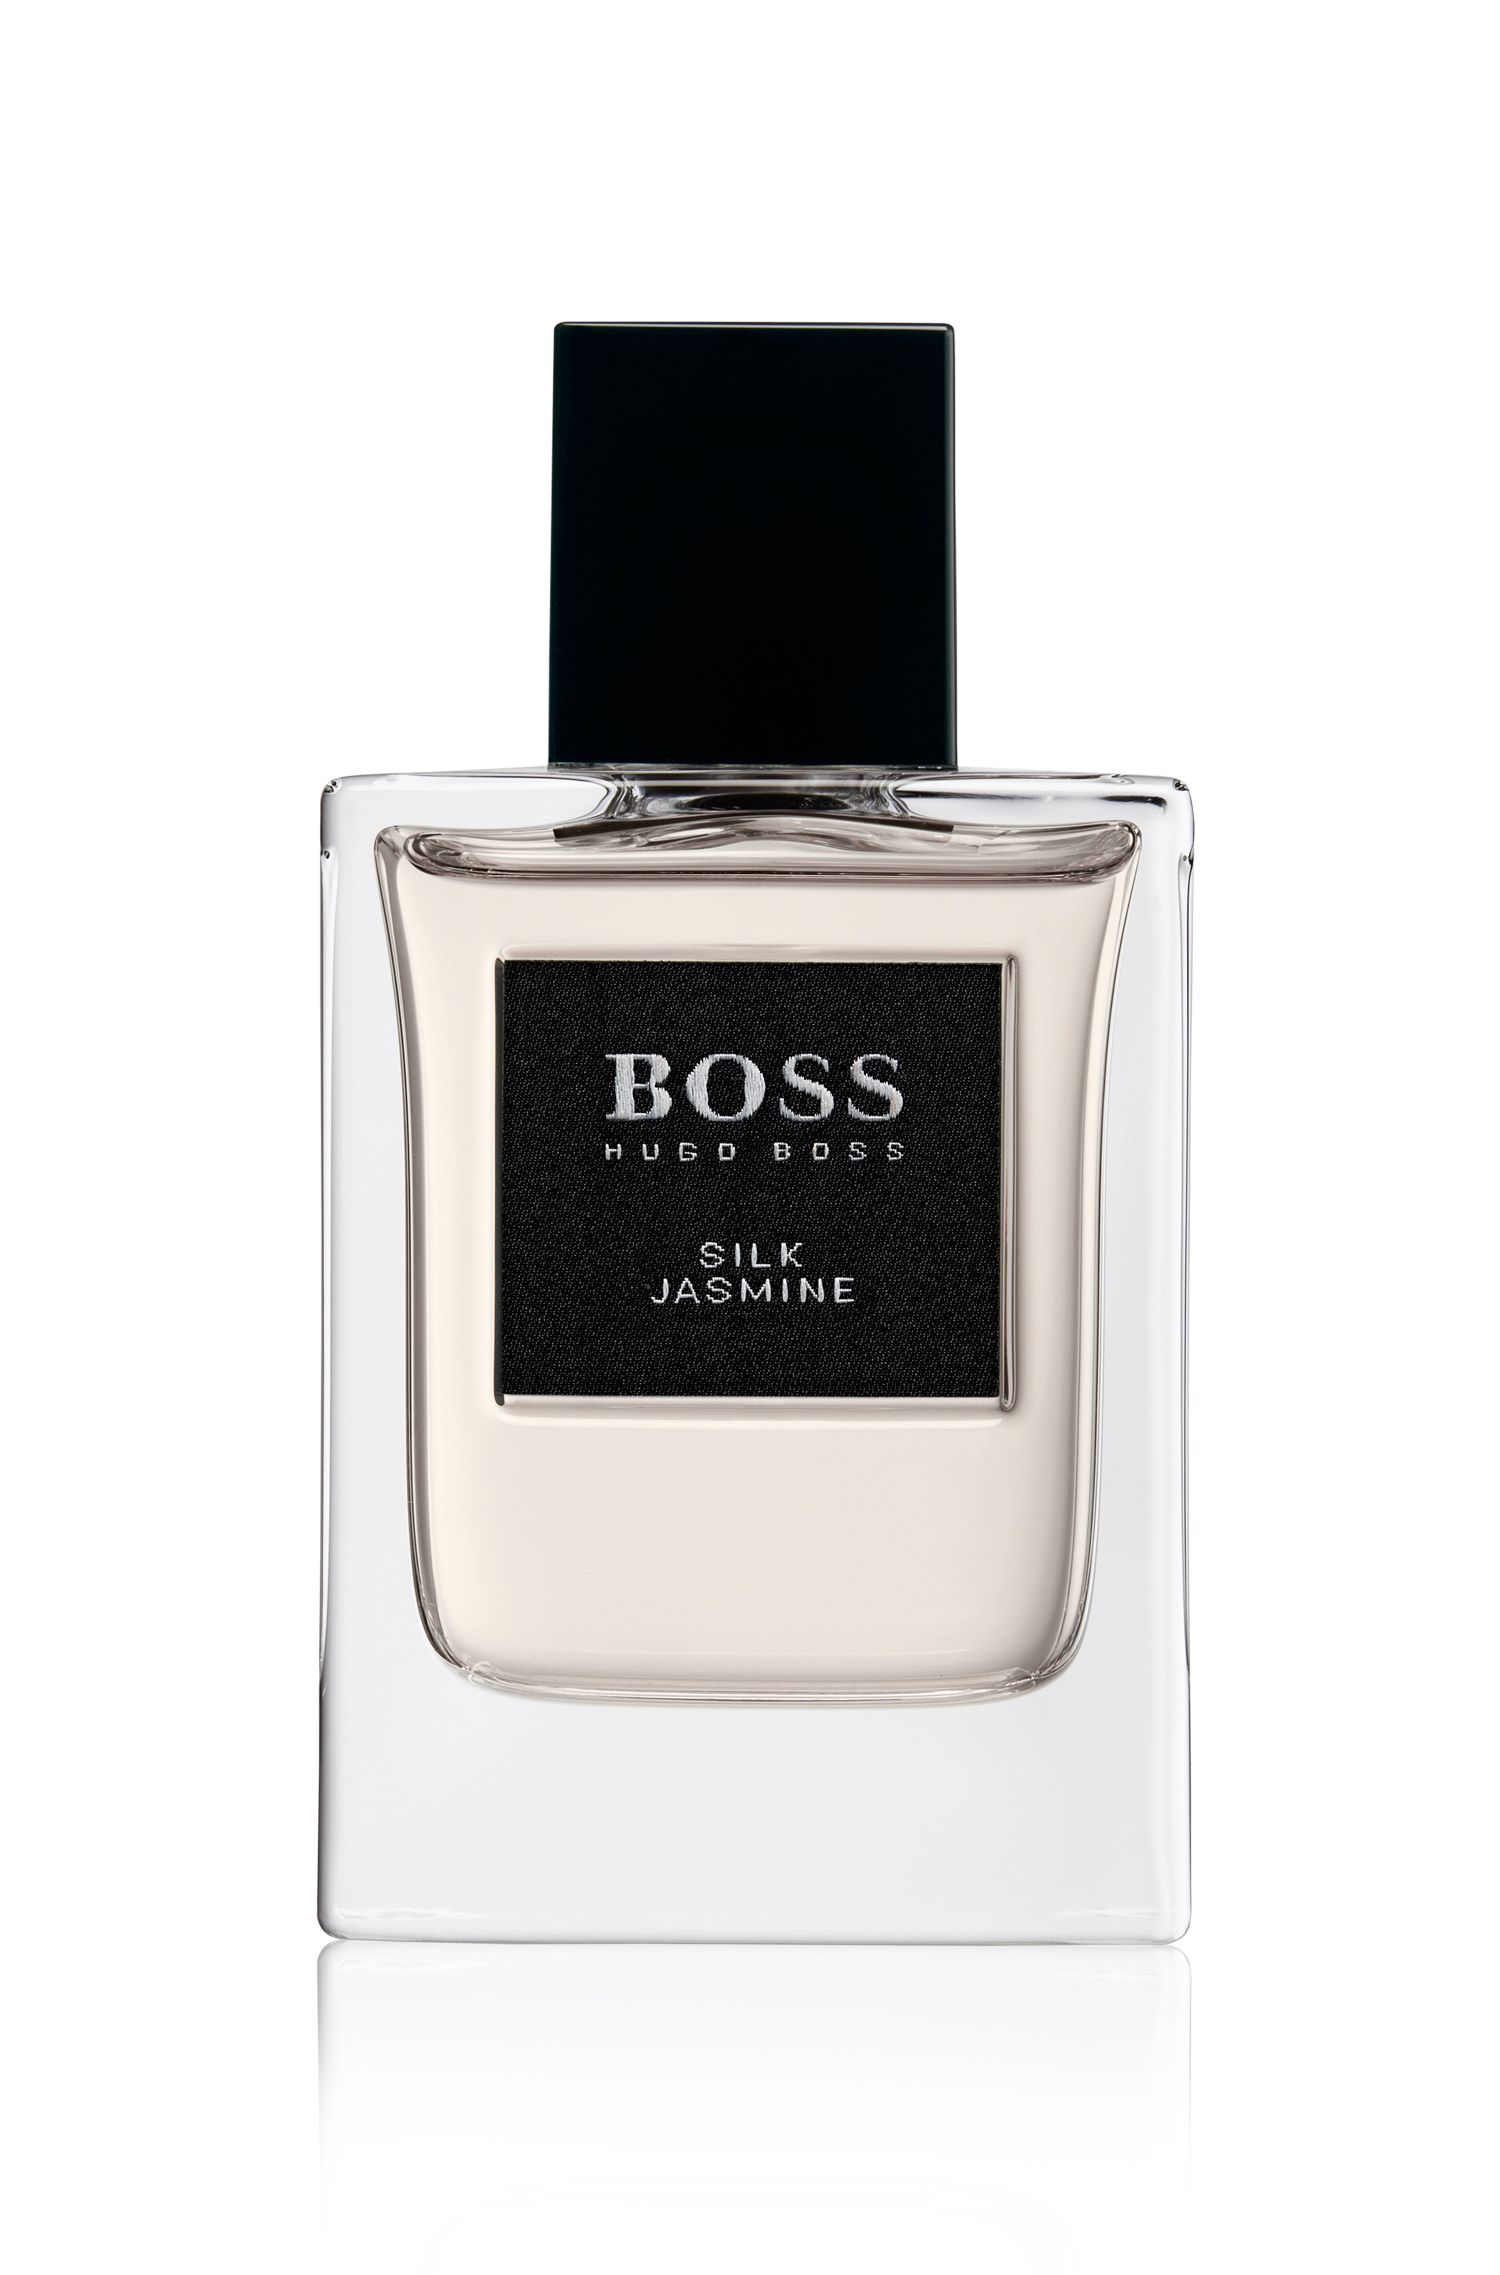 'BOSS The Collection' | 1.6 fl. oz. (50 mL) Silk & Jasmine Eau de Toilette